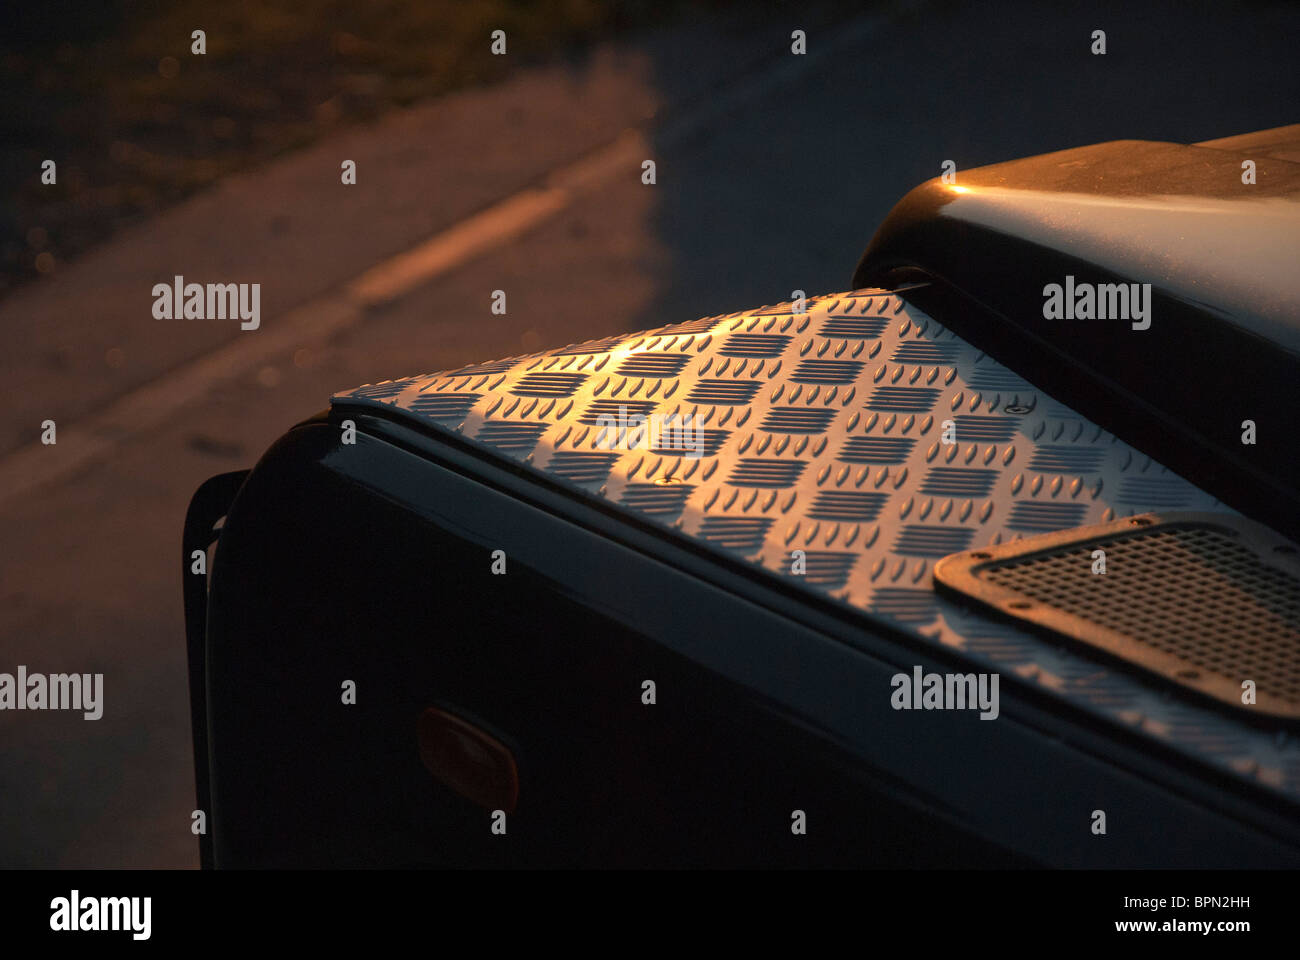 Chequered metal plate on top of Land Rover Defender wheel arch - Stock Image